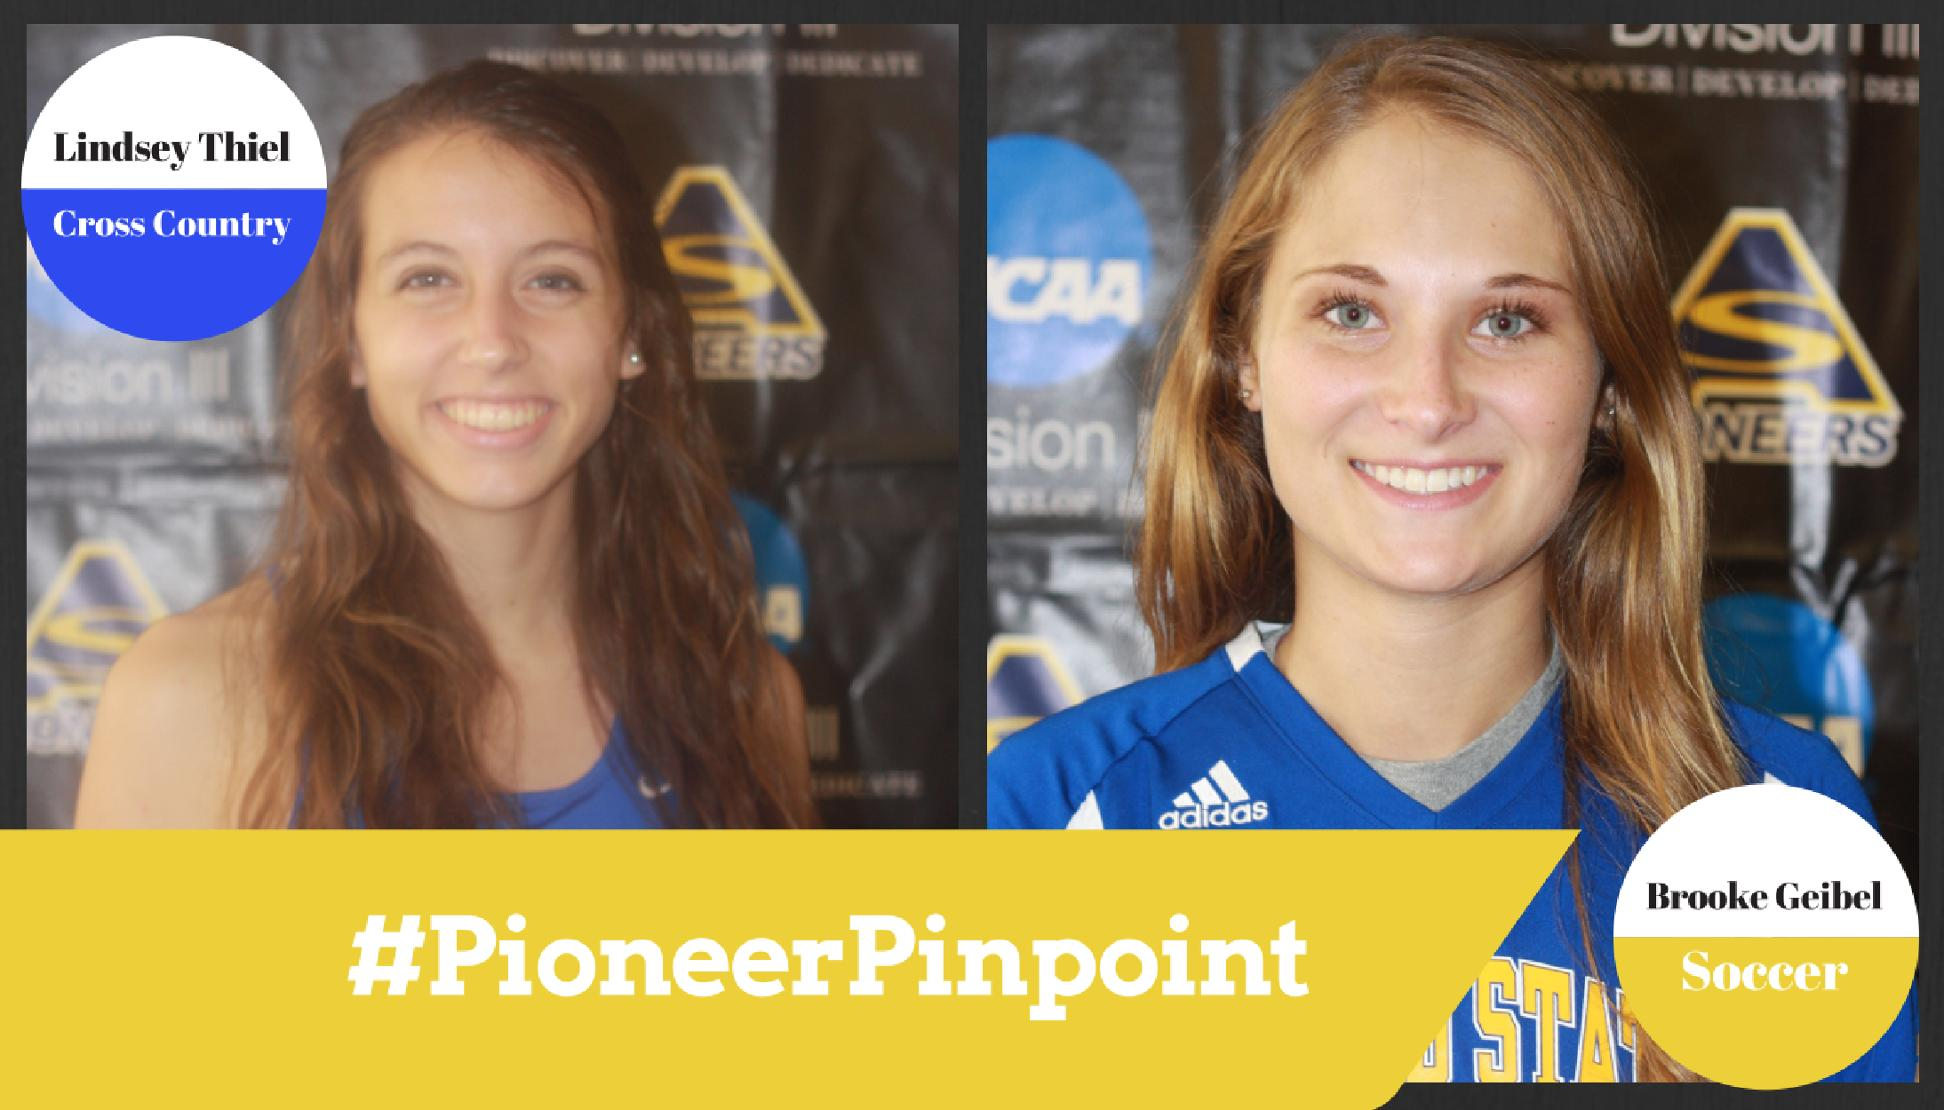 Thiel and Geibel Named #PioneerPinpoint Athletes of the Week